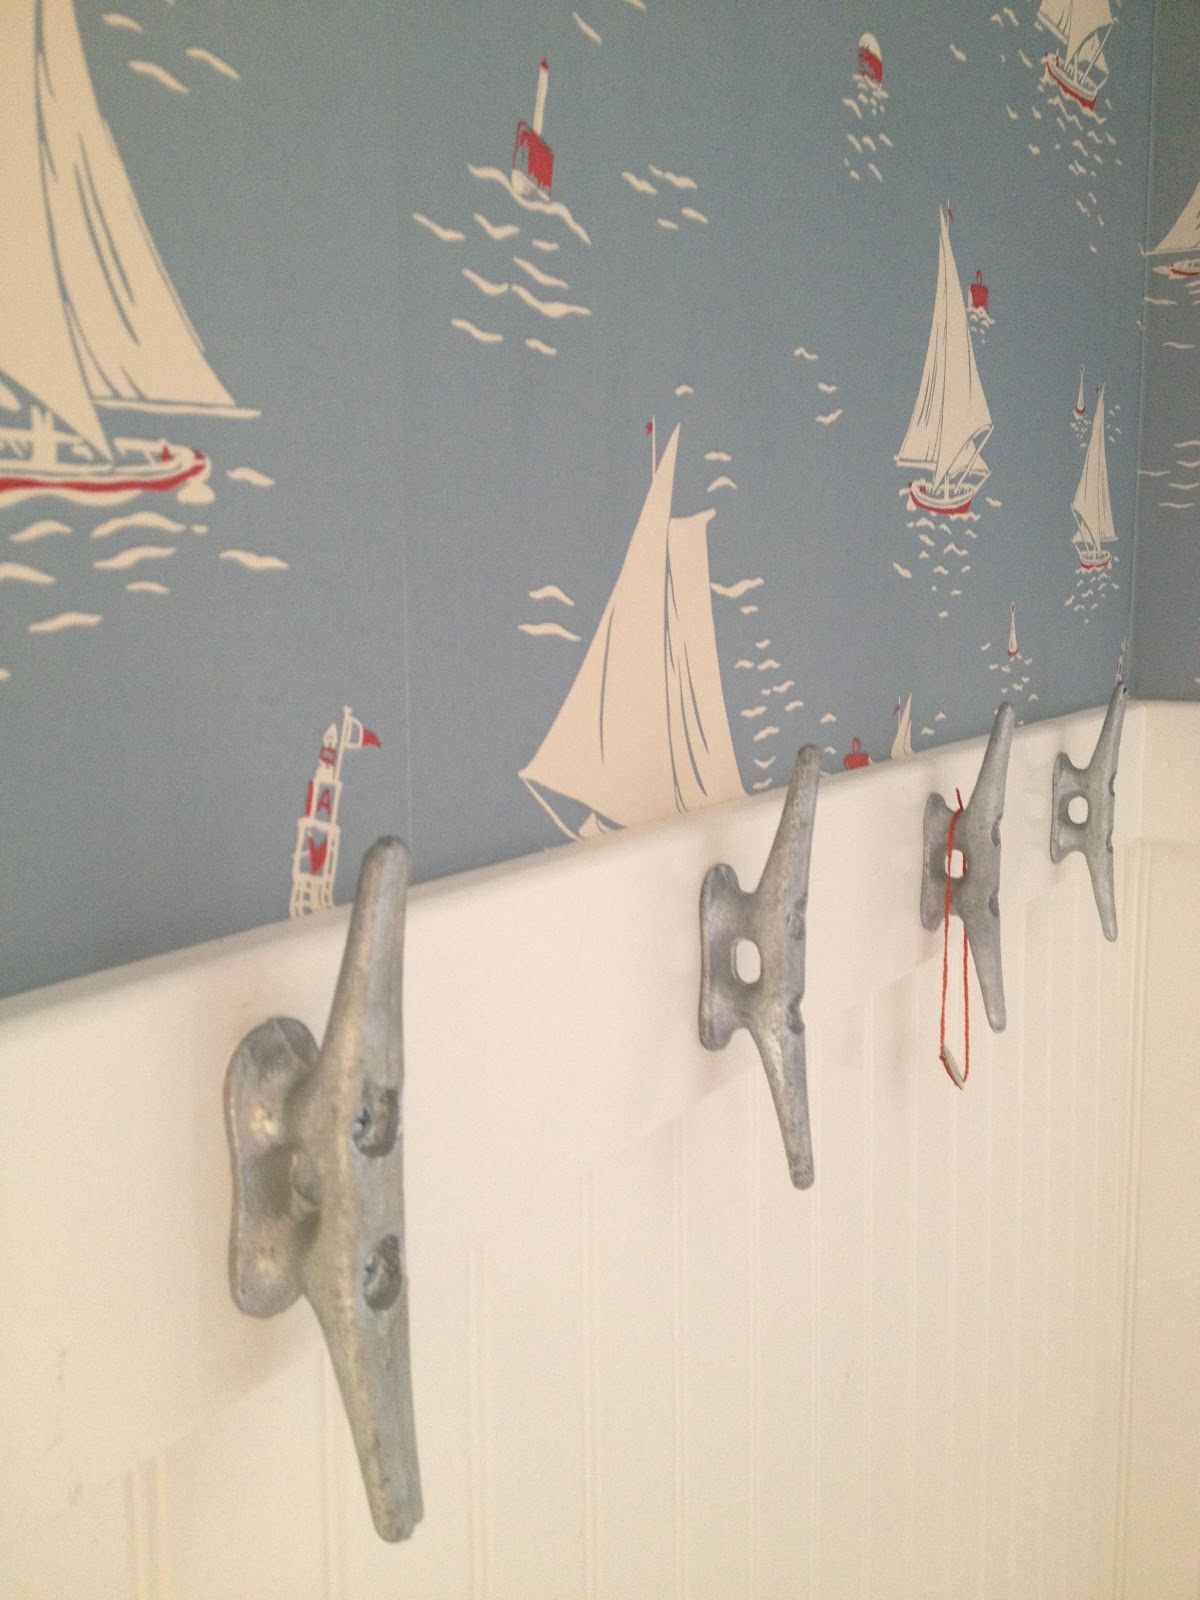 This Old Coconut Grove Cabana Bathroom Wallpaper Amp Boat